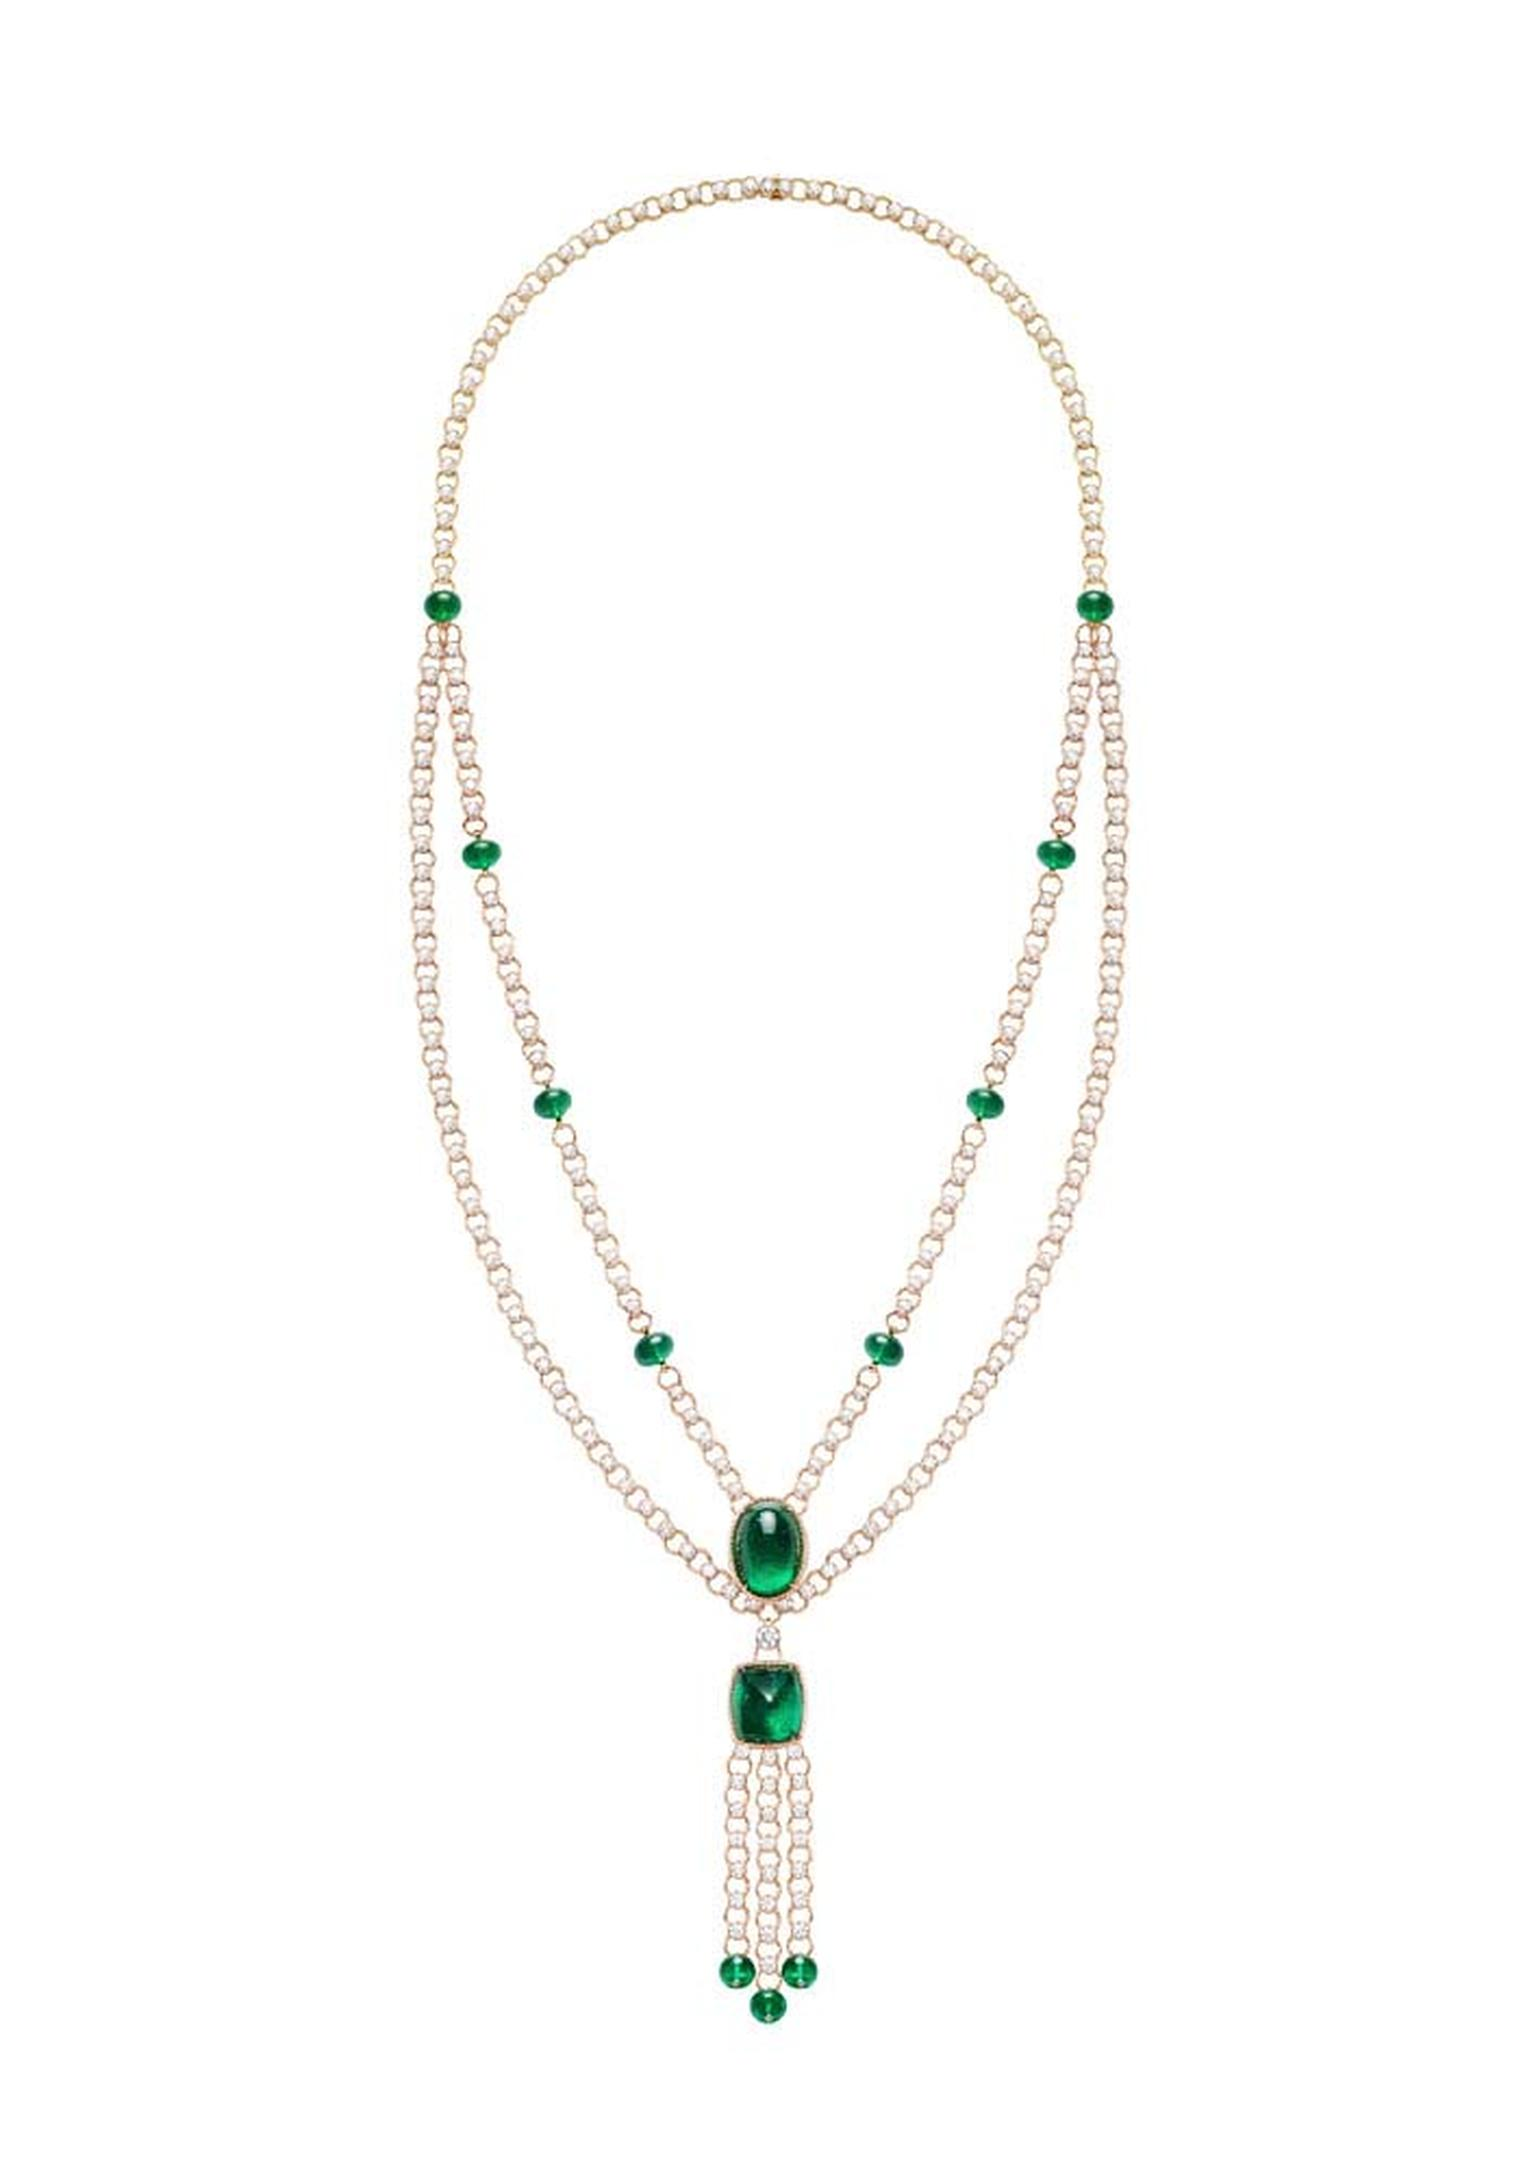 Extremely Piaget collection necklace in pink gold set with 48.54ct emerald beads, 29.57ct brilliant-cut diamonds, a 25.38ct oval cabochon-cut emerald and a 20.27ct sugarloaf emerald.